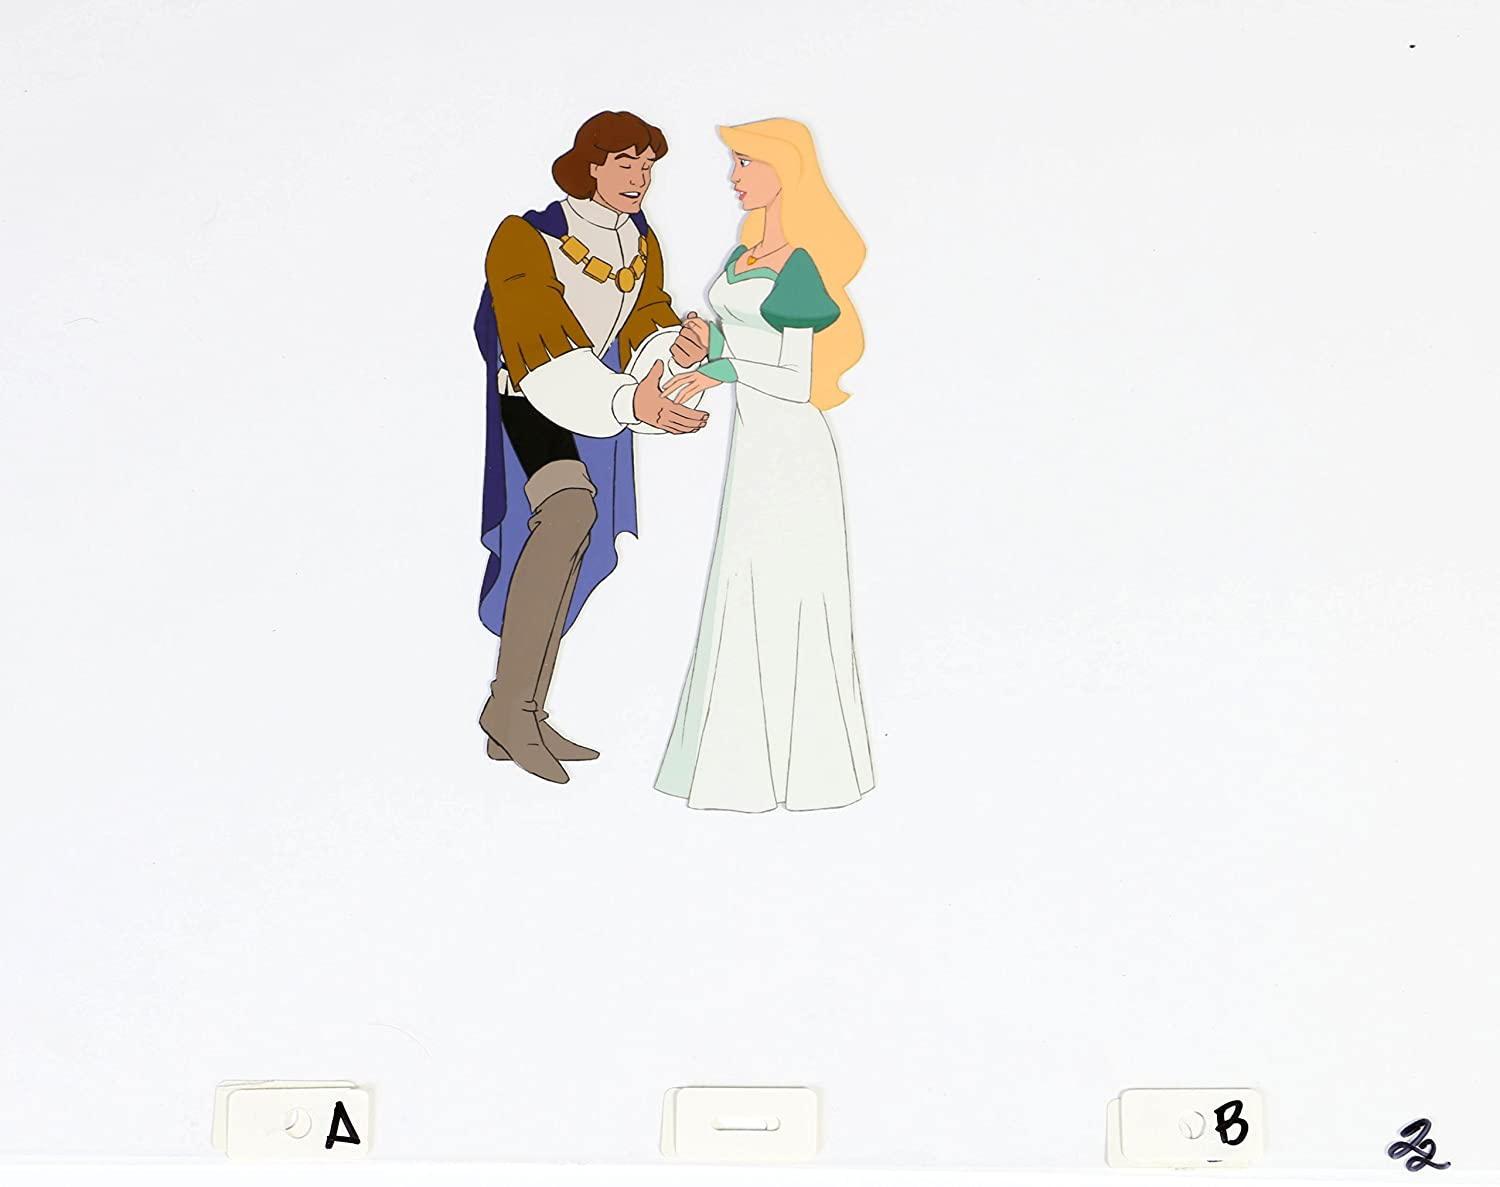 Amazon.com : Swan Princess Original Art Derek & Odette Adult : Everything Else